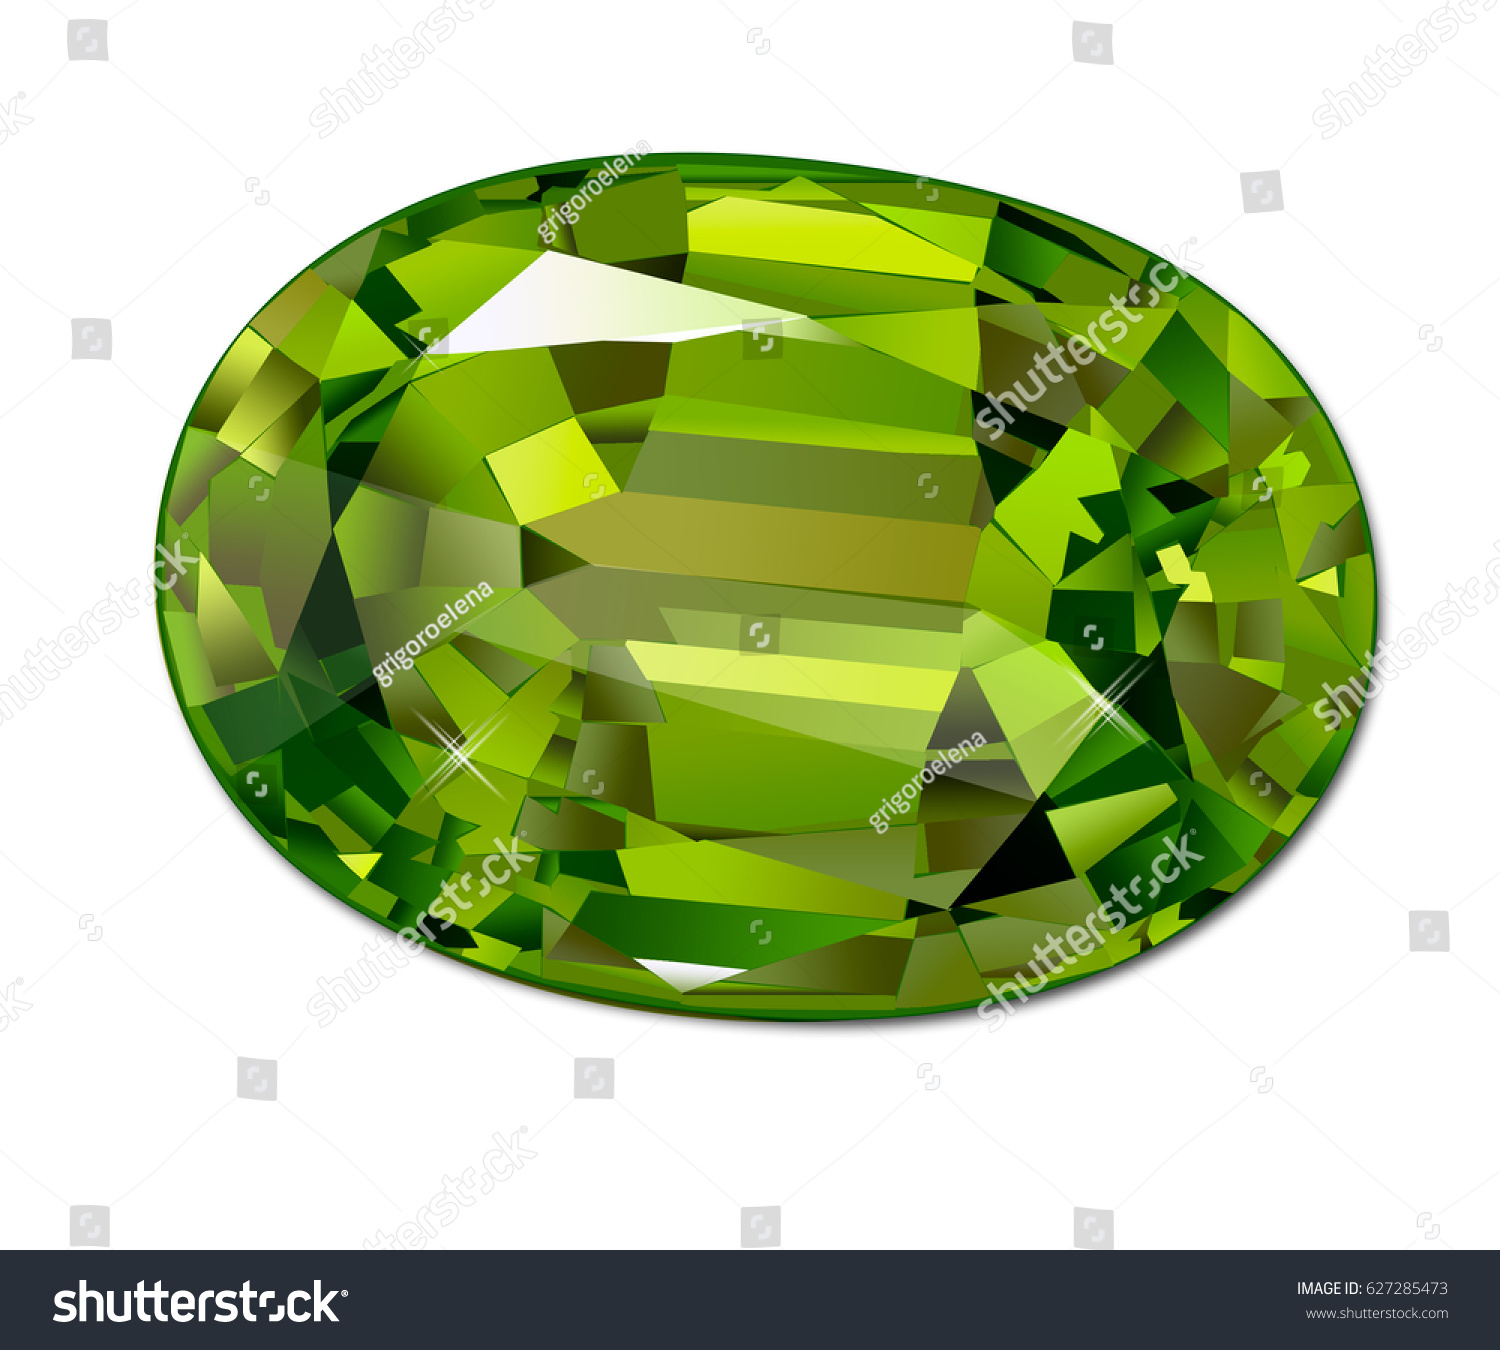 precious emerald images png imgs jewelry download stone green free